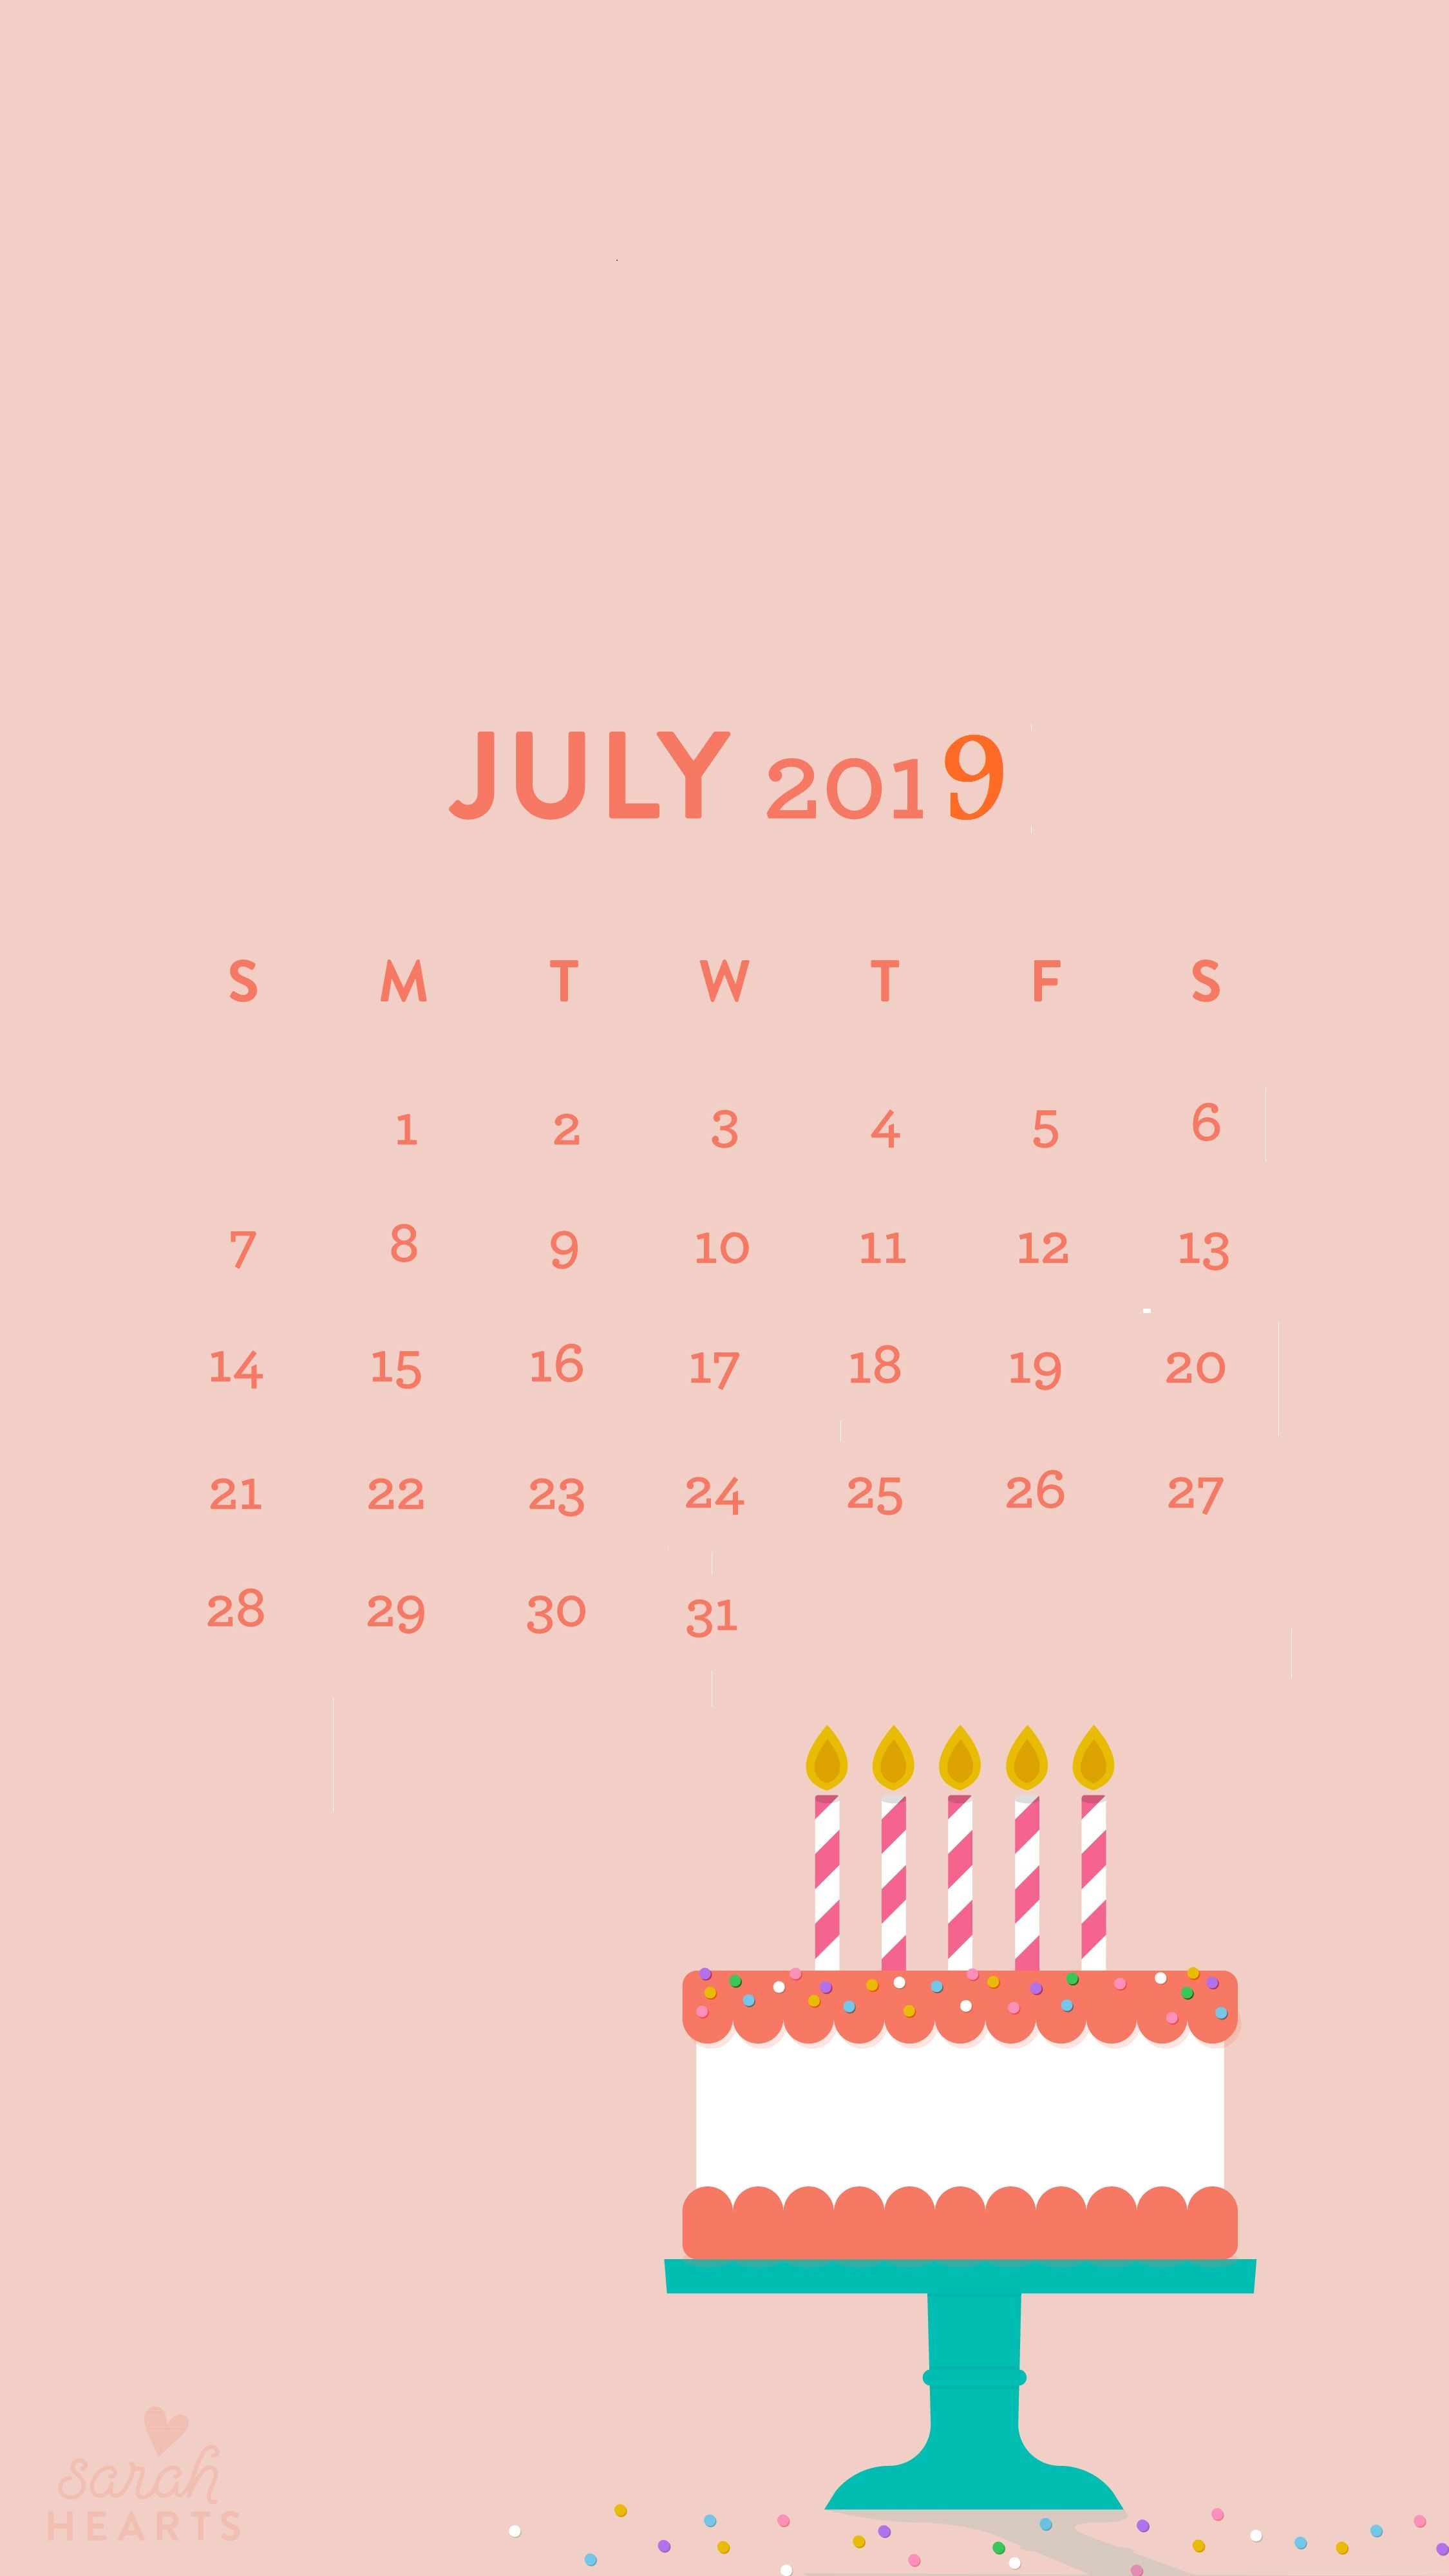 July 2019 iPhone Calendar Wallpaper Homemaking in 2019 2250x4000